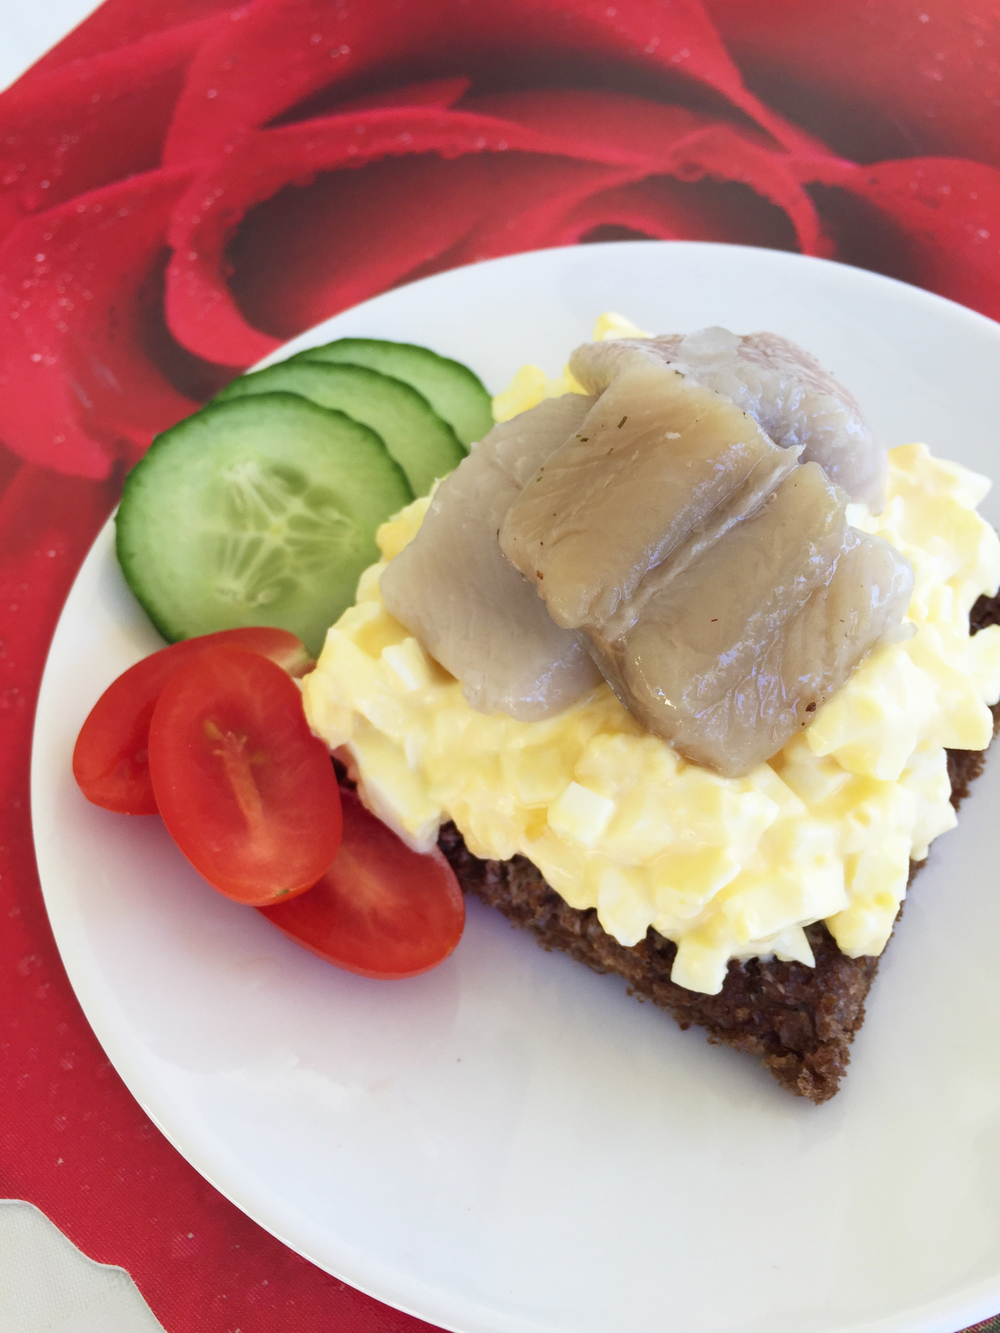 Egg Salad topped with Herring